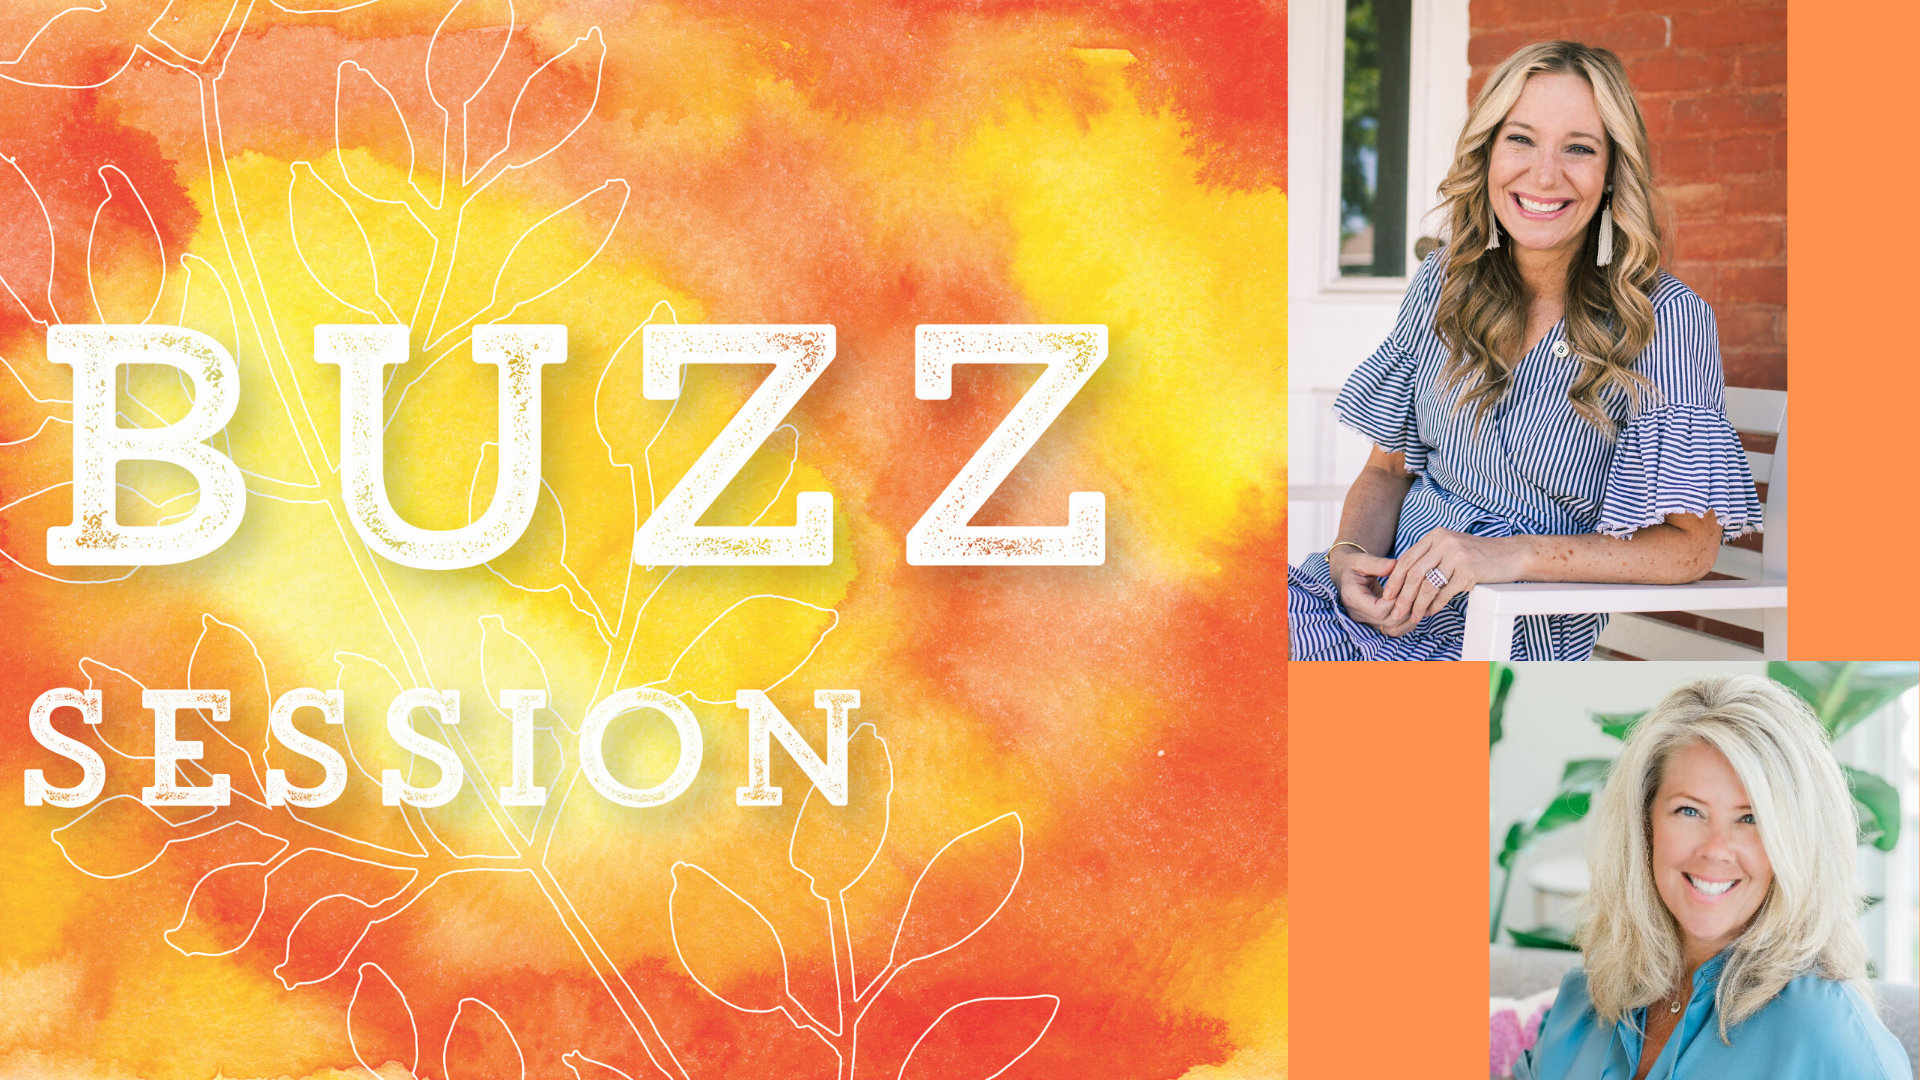 Join Ayesha Dawley and Michael Kithcart at December's Buzz Session!